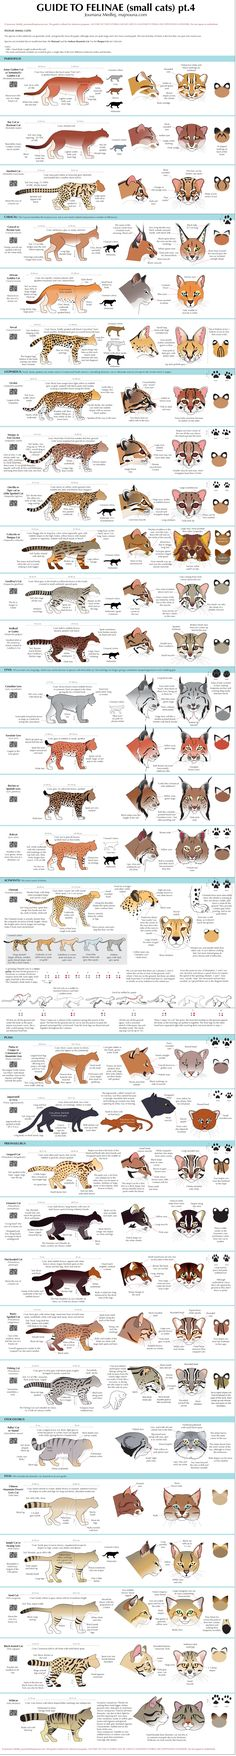 Guide to Little Cats by `majnouna on deviantART  - infographic